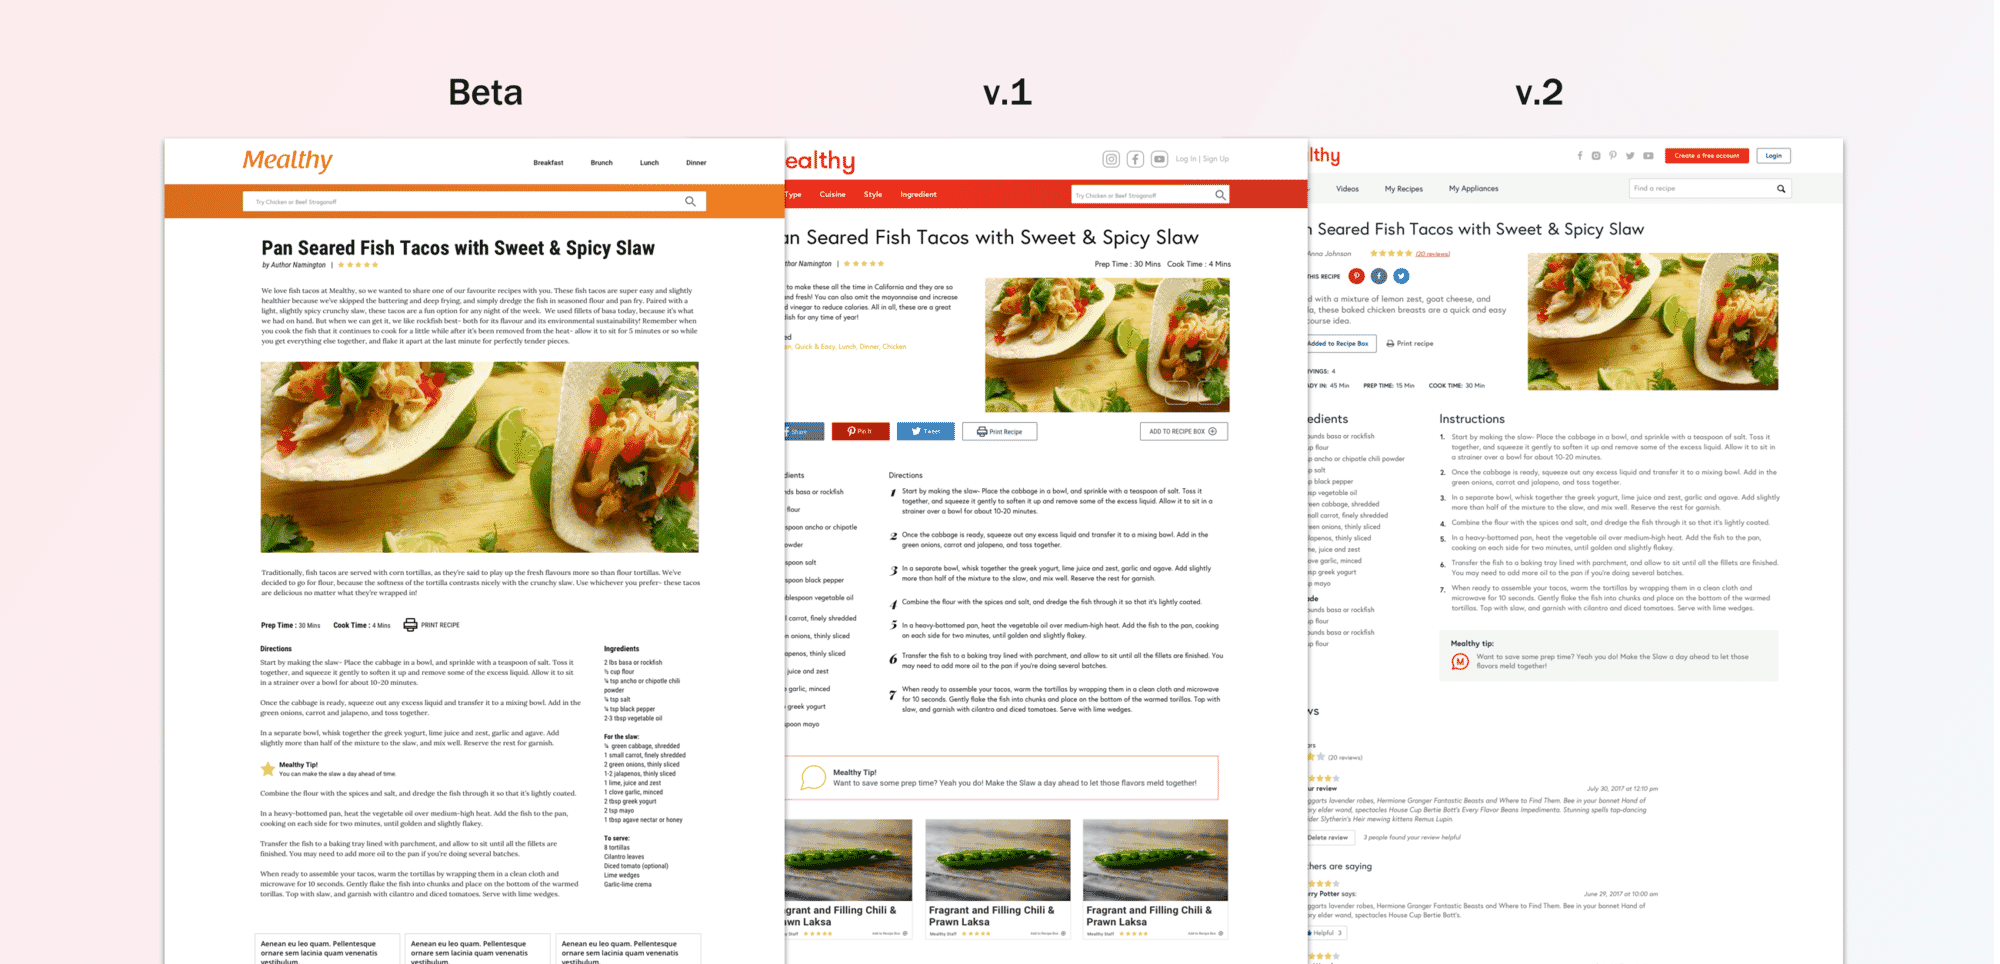 the progression of the recipe page over several months